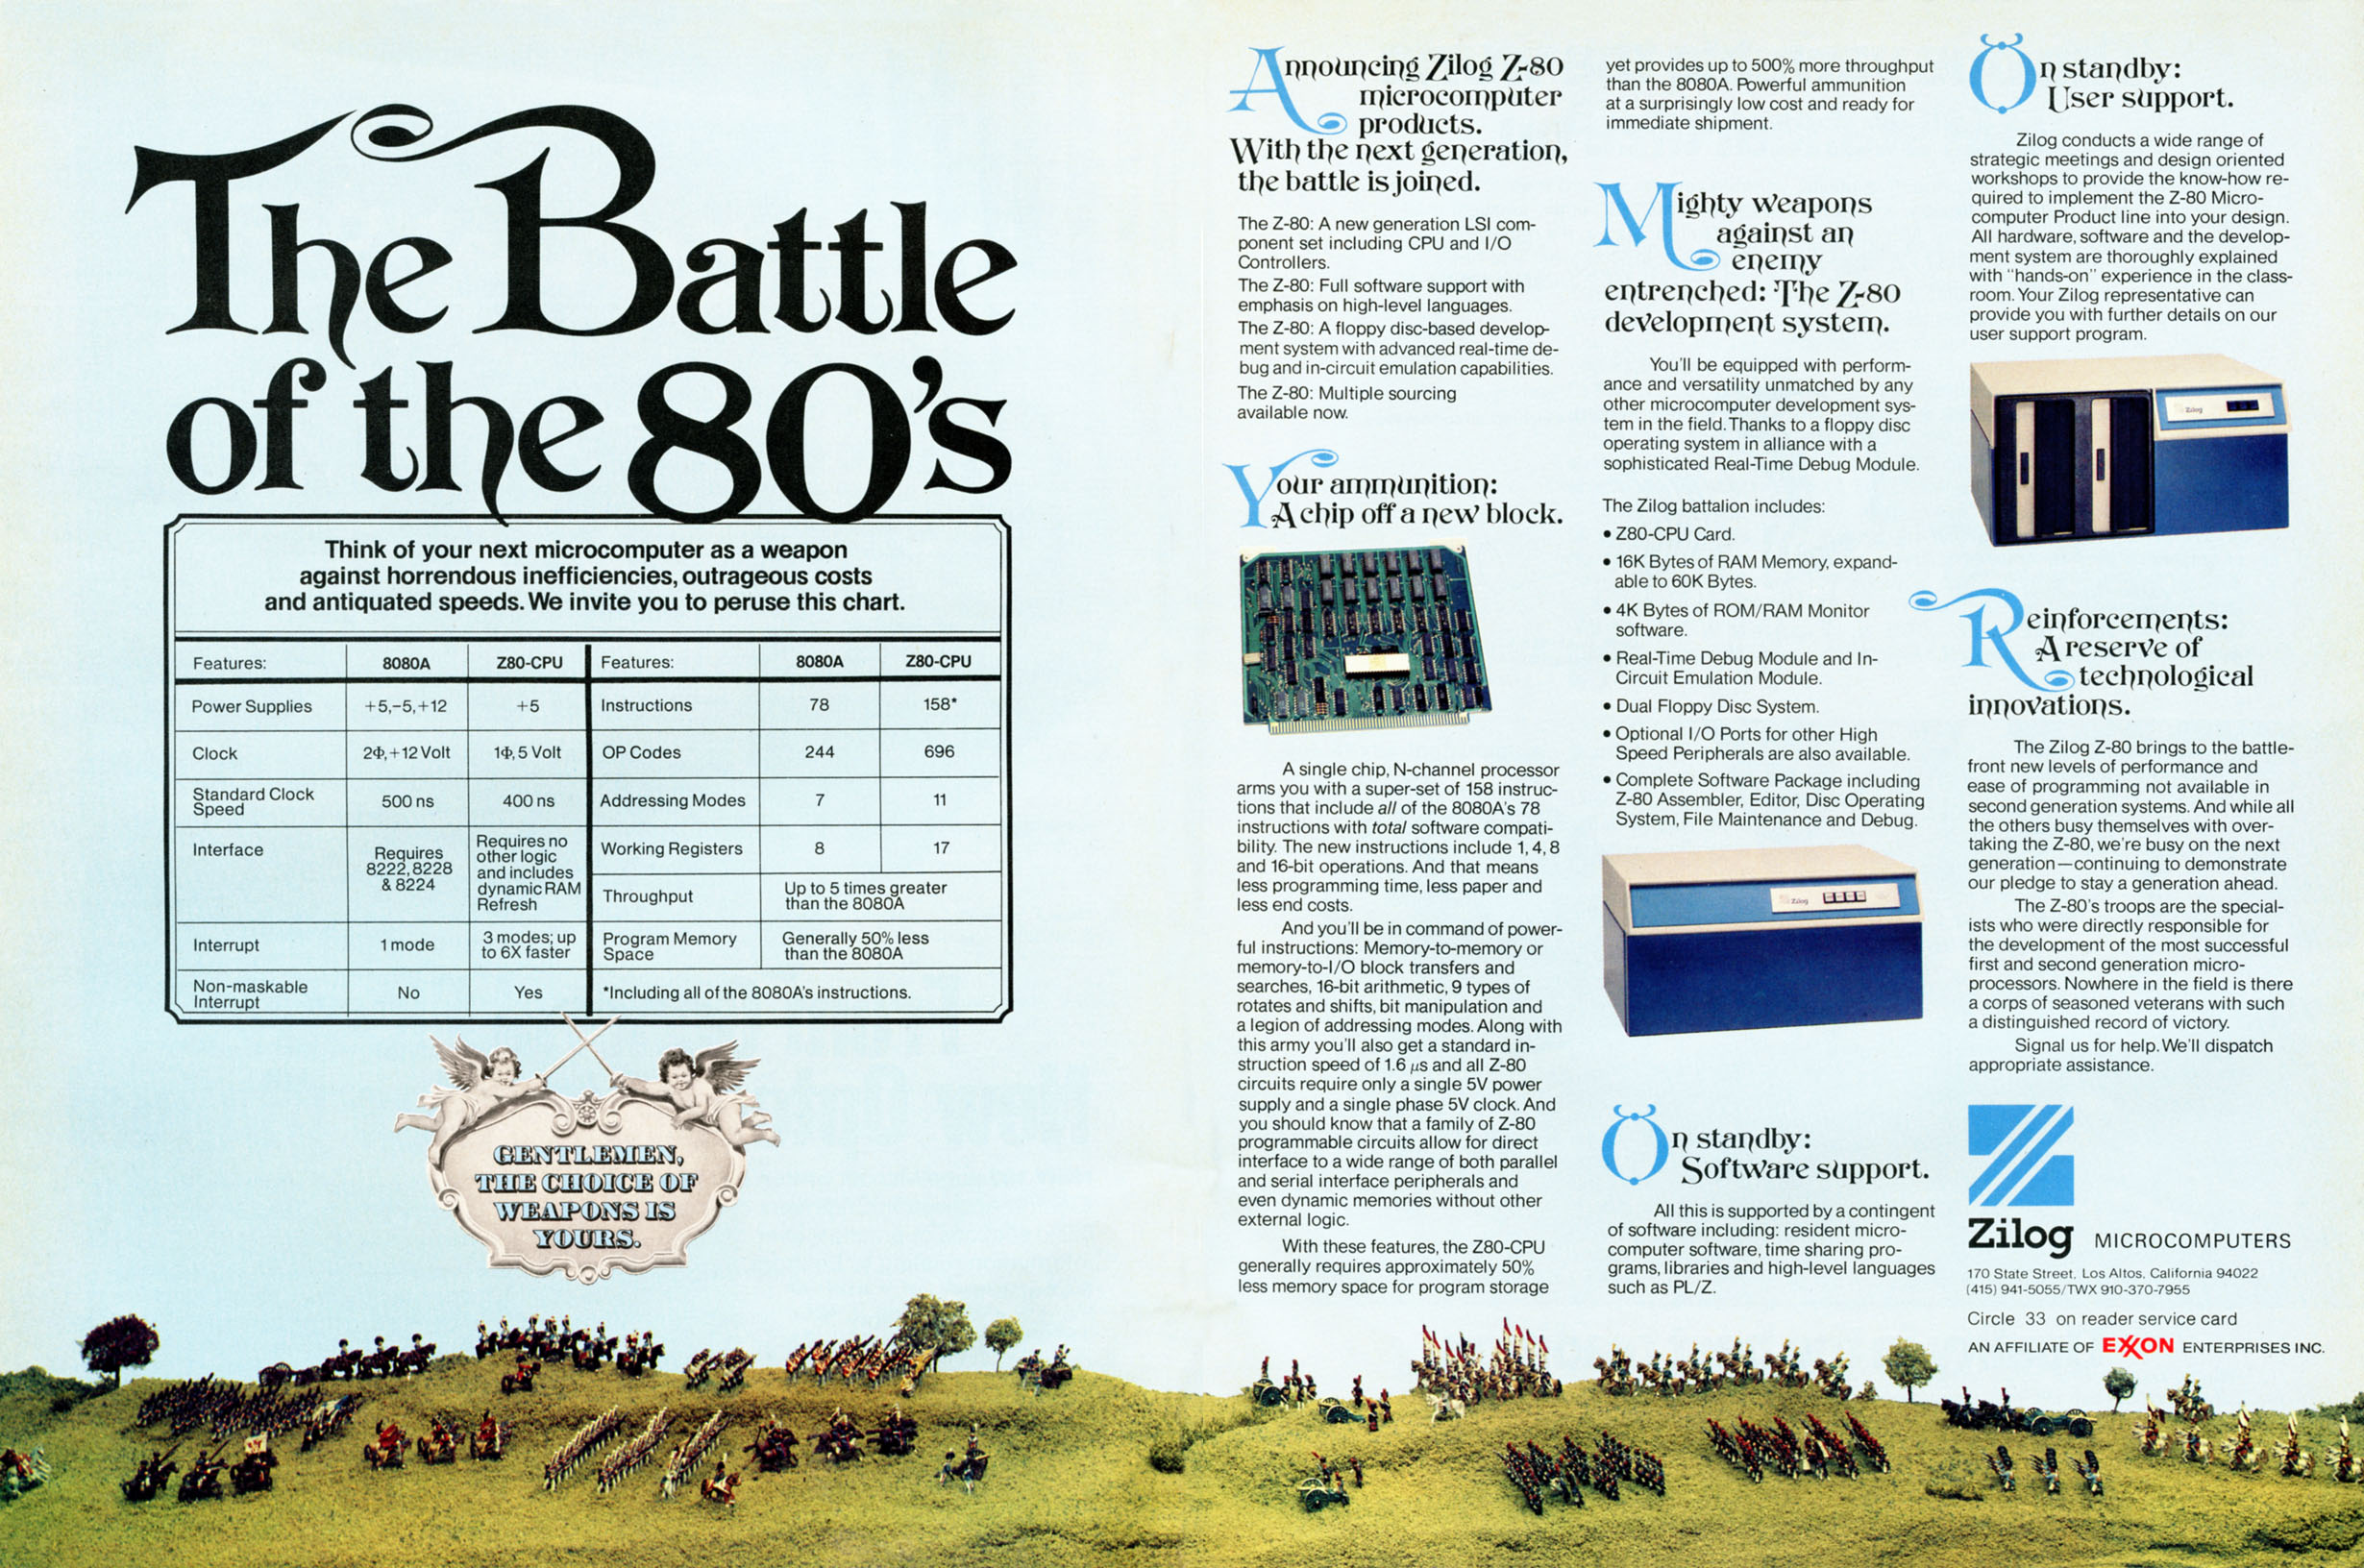 Battle of the 80's - advertisement for the Z80 from May 1976